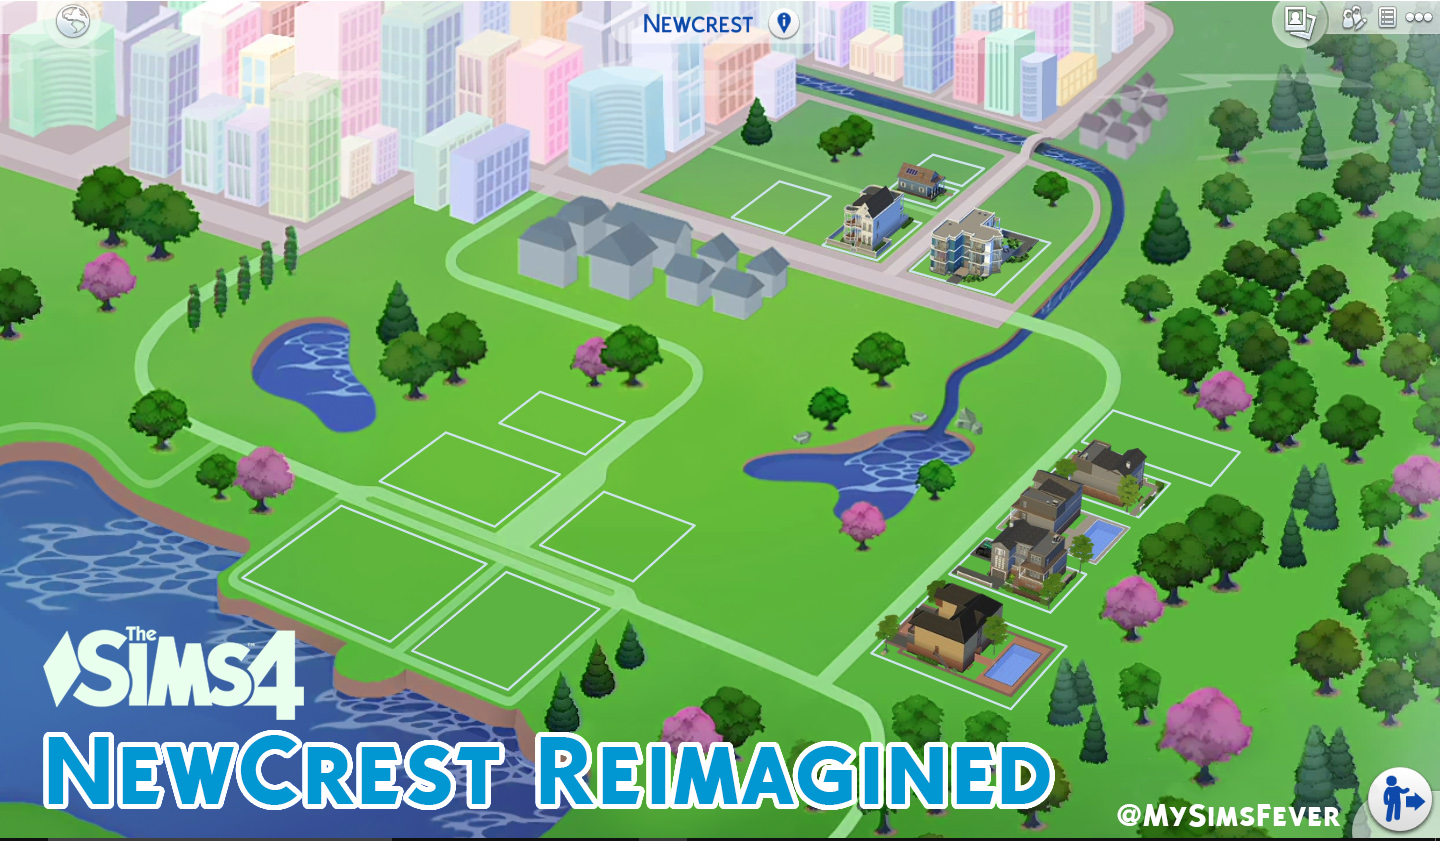 Mod the sims newcrest map reimagined override this map re texture is based on menaceman44 newcrest colored map found here httpmodthesimsfodownloadpt581913 thank you so much gumiabroncs Gallery